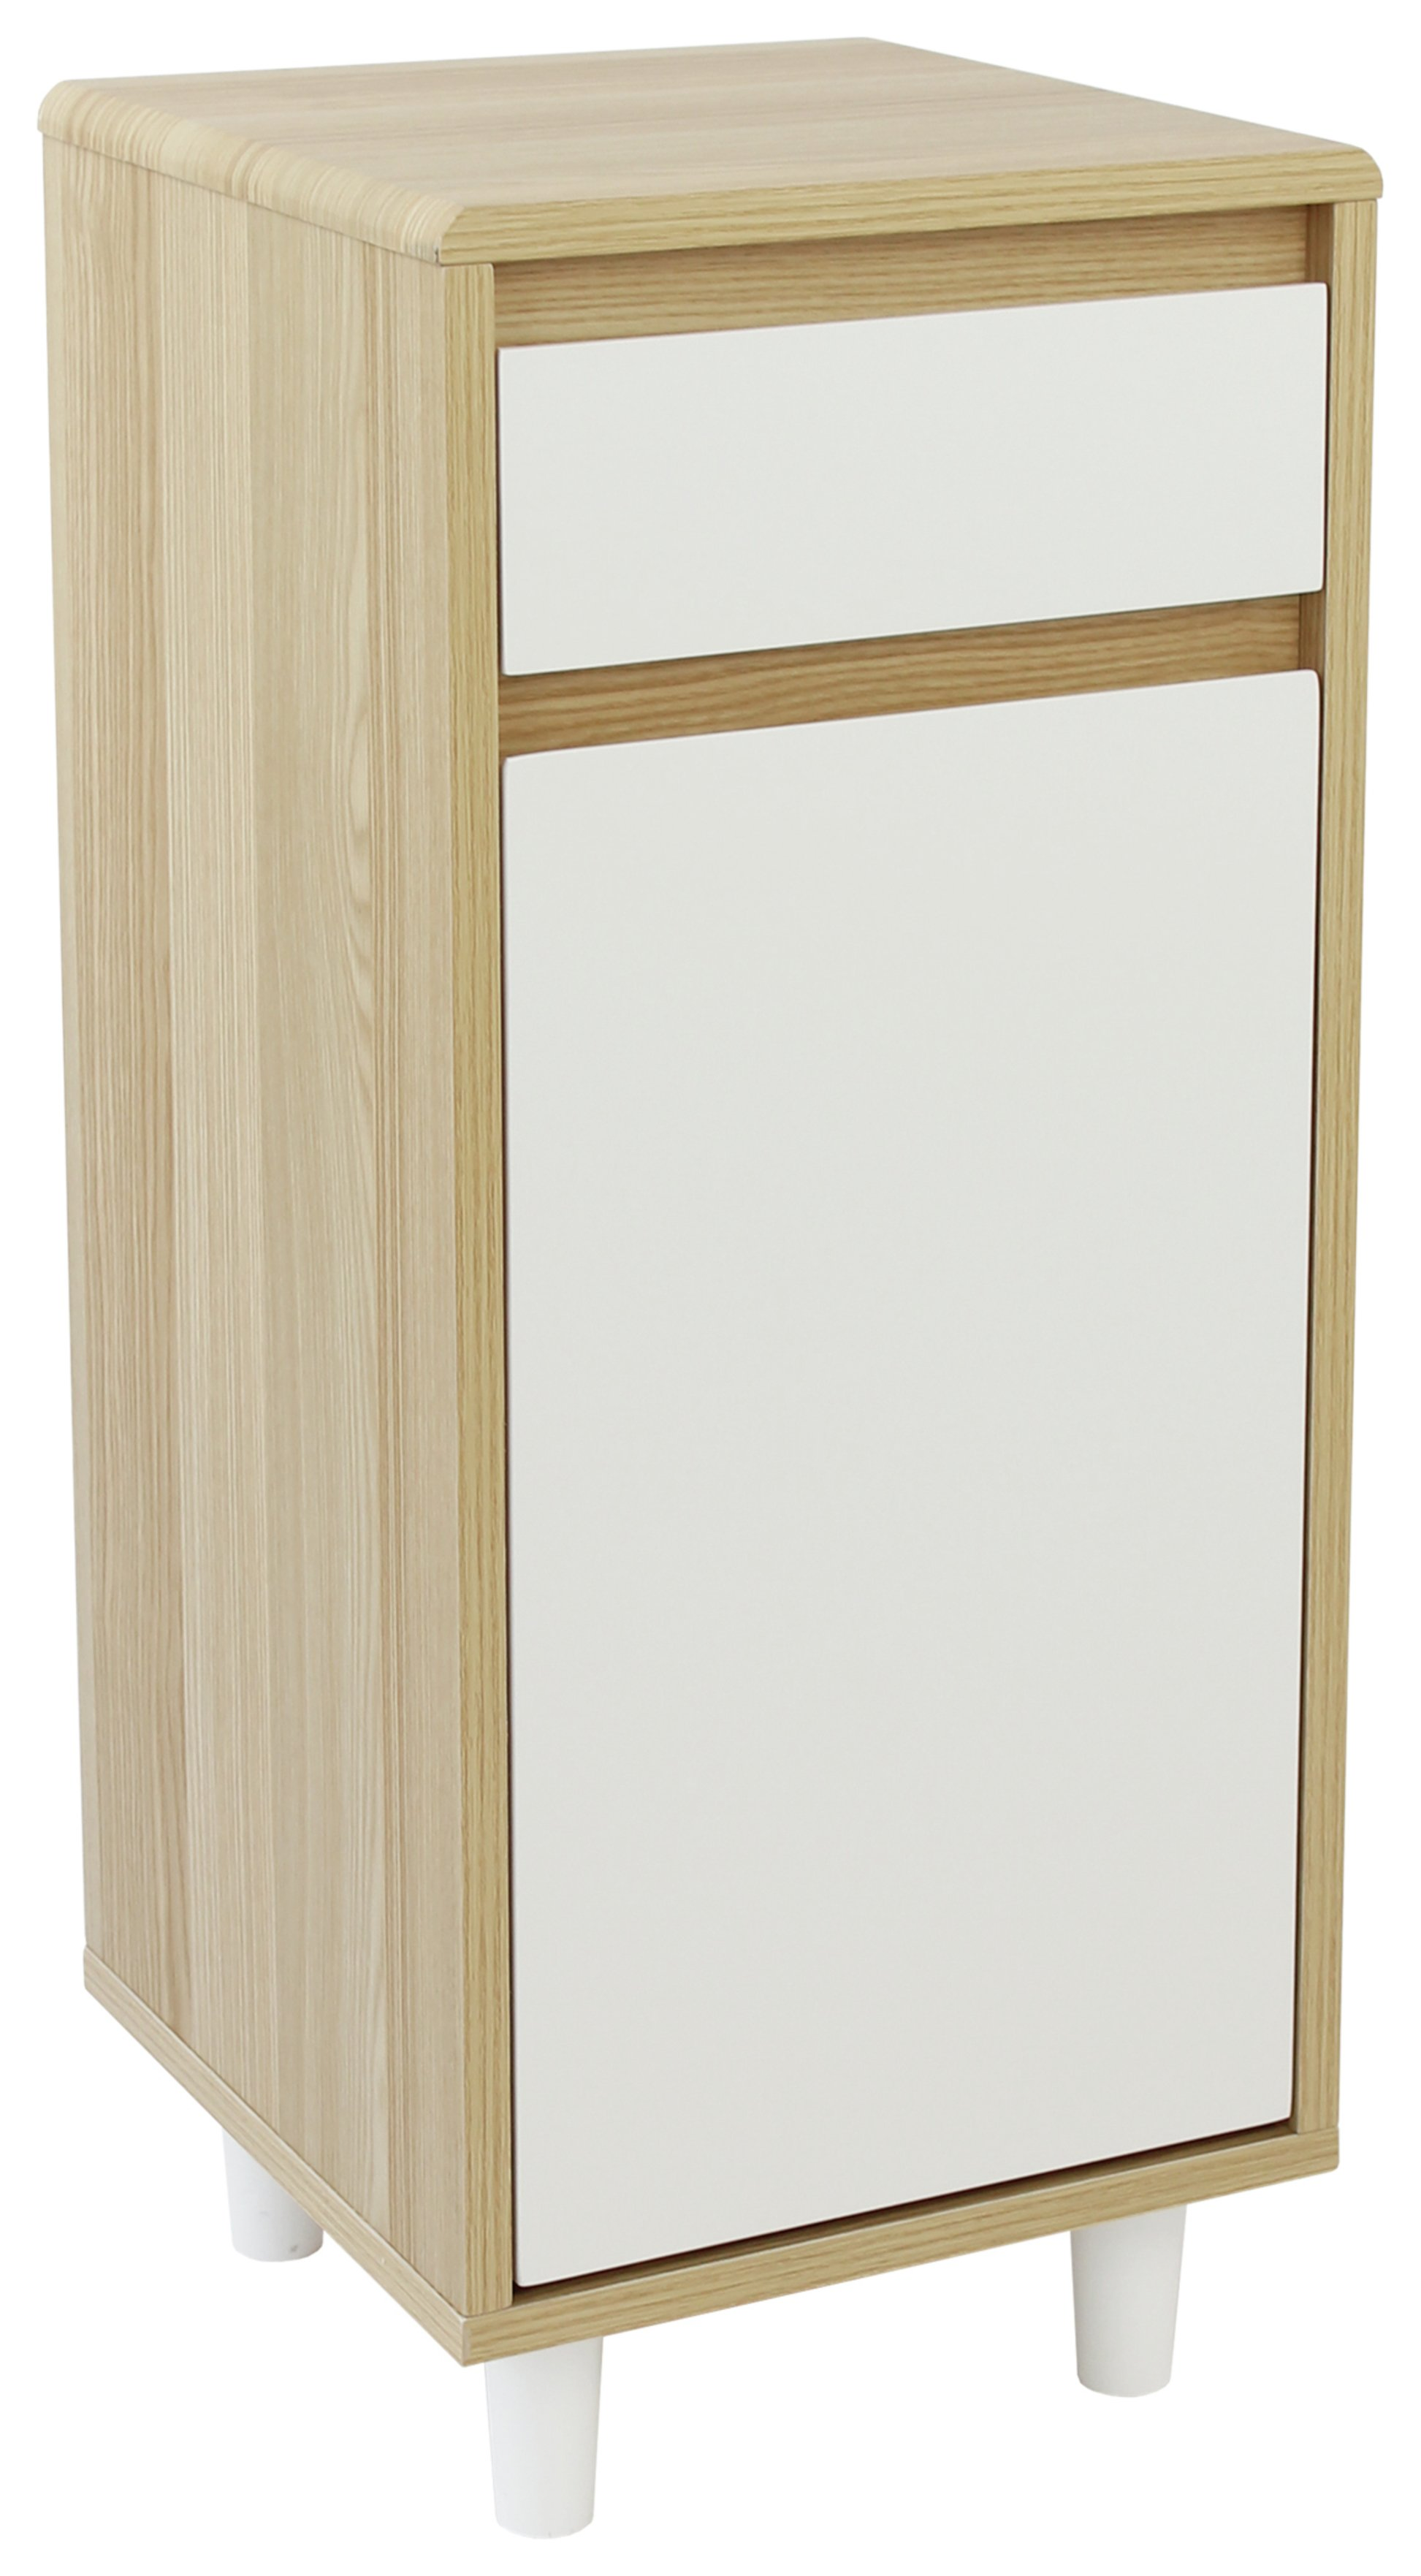 Image of Collection Caleb 1 Door 1 Drawer Cabinet - Two Tone